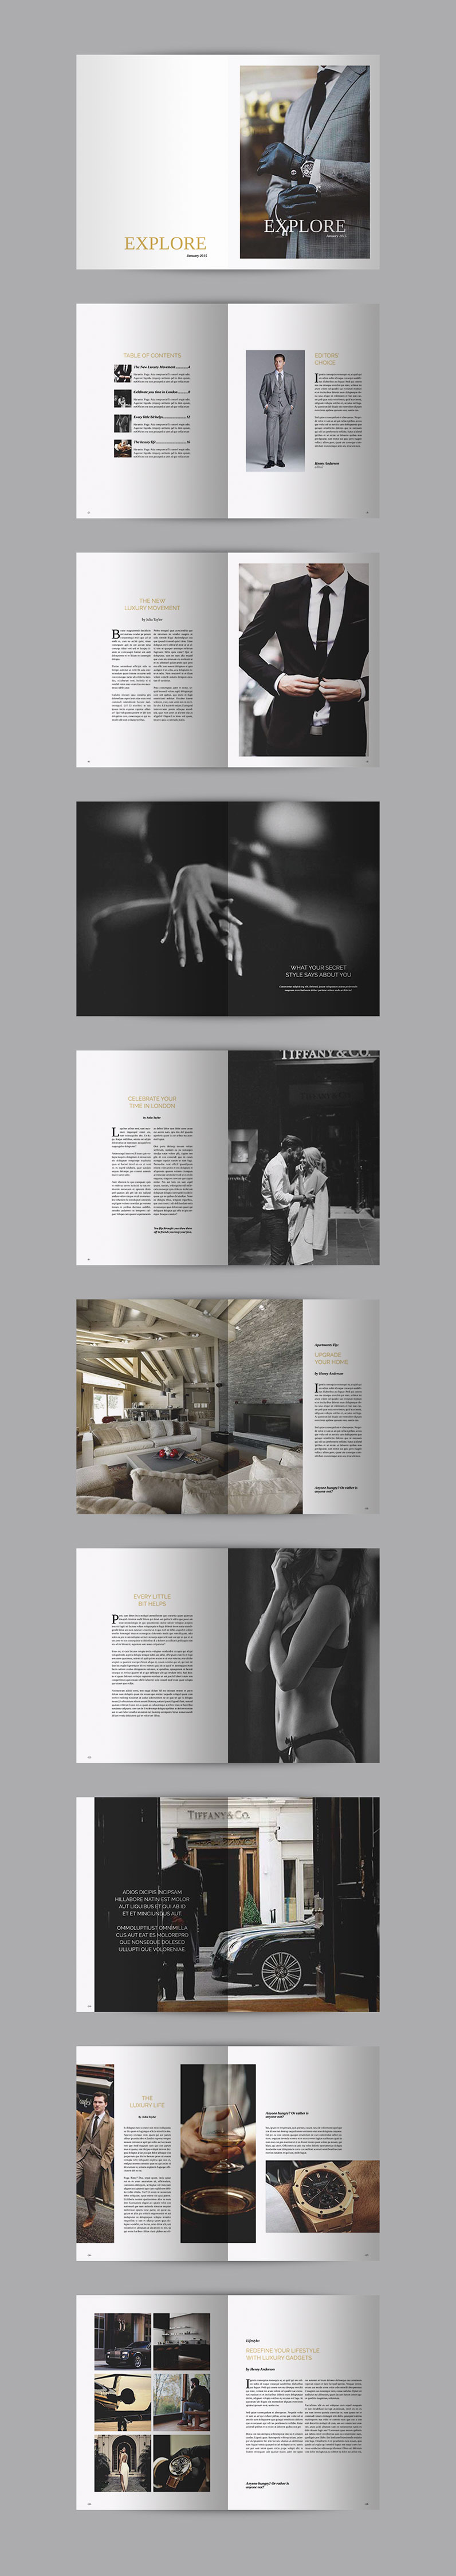 Pin by CTsan on 排版 | Magazine layout design, Editorial ...